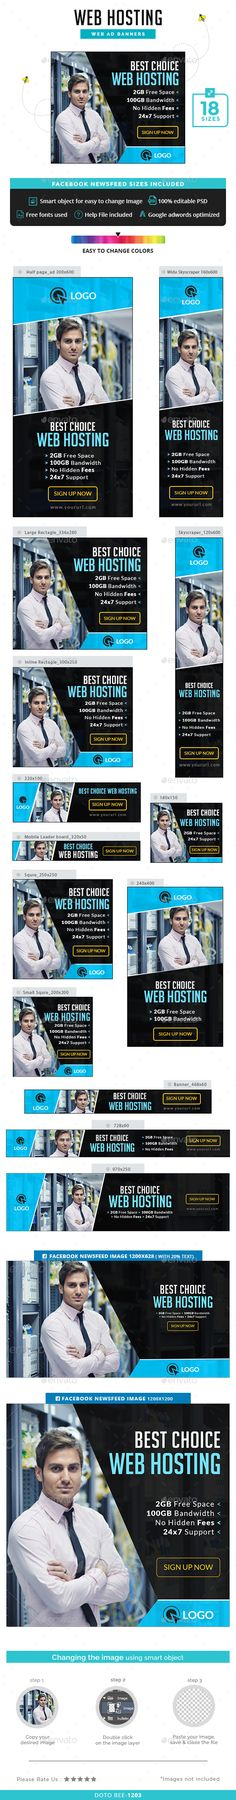 Web Hosting Banners Template PSD. Download here: http://graphicriver.net/item/web-hosting-banners/15233579?ref=ksioks